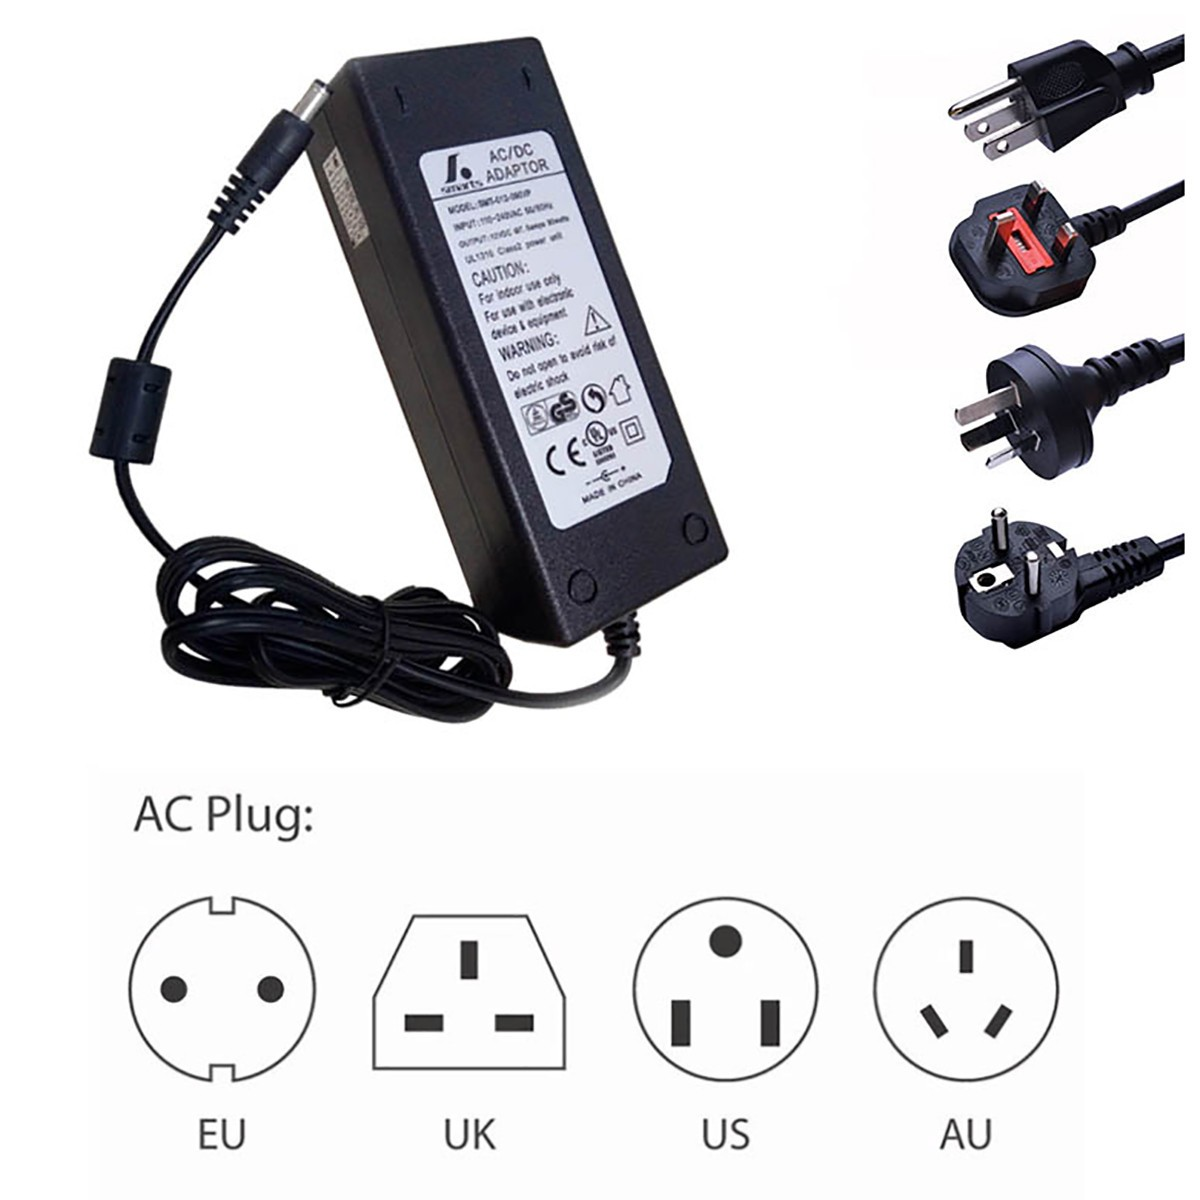 6V 5Amp 30W Indoor AC-DC Desk Top Wall Plug in Switching LED Power Supply with DC 5.5/2.1 Male Barrel Connector